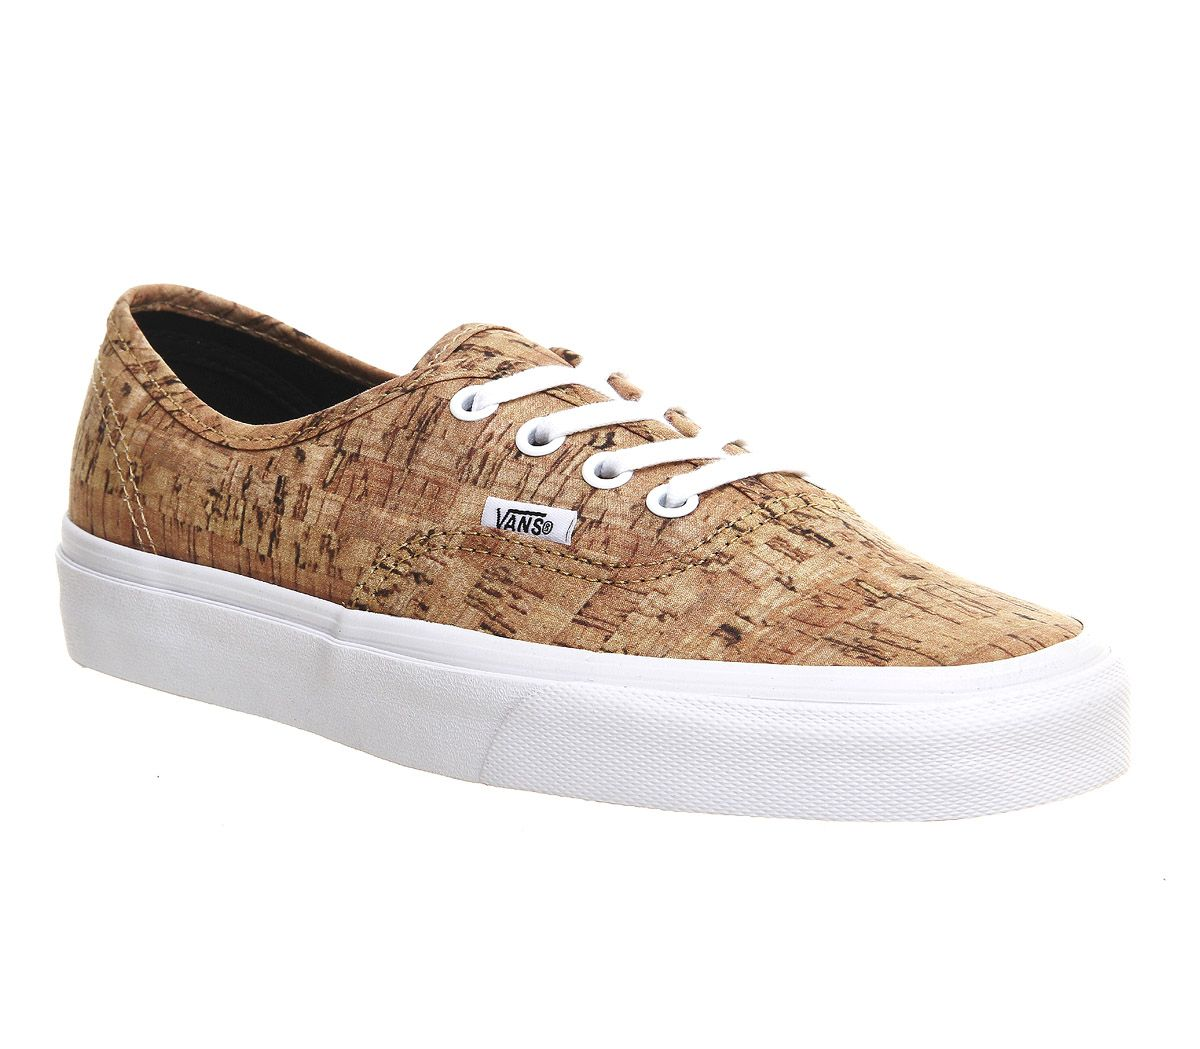 Cork Vans Authentic From Office Co Uk